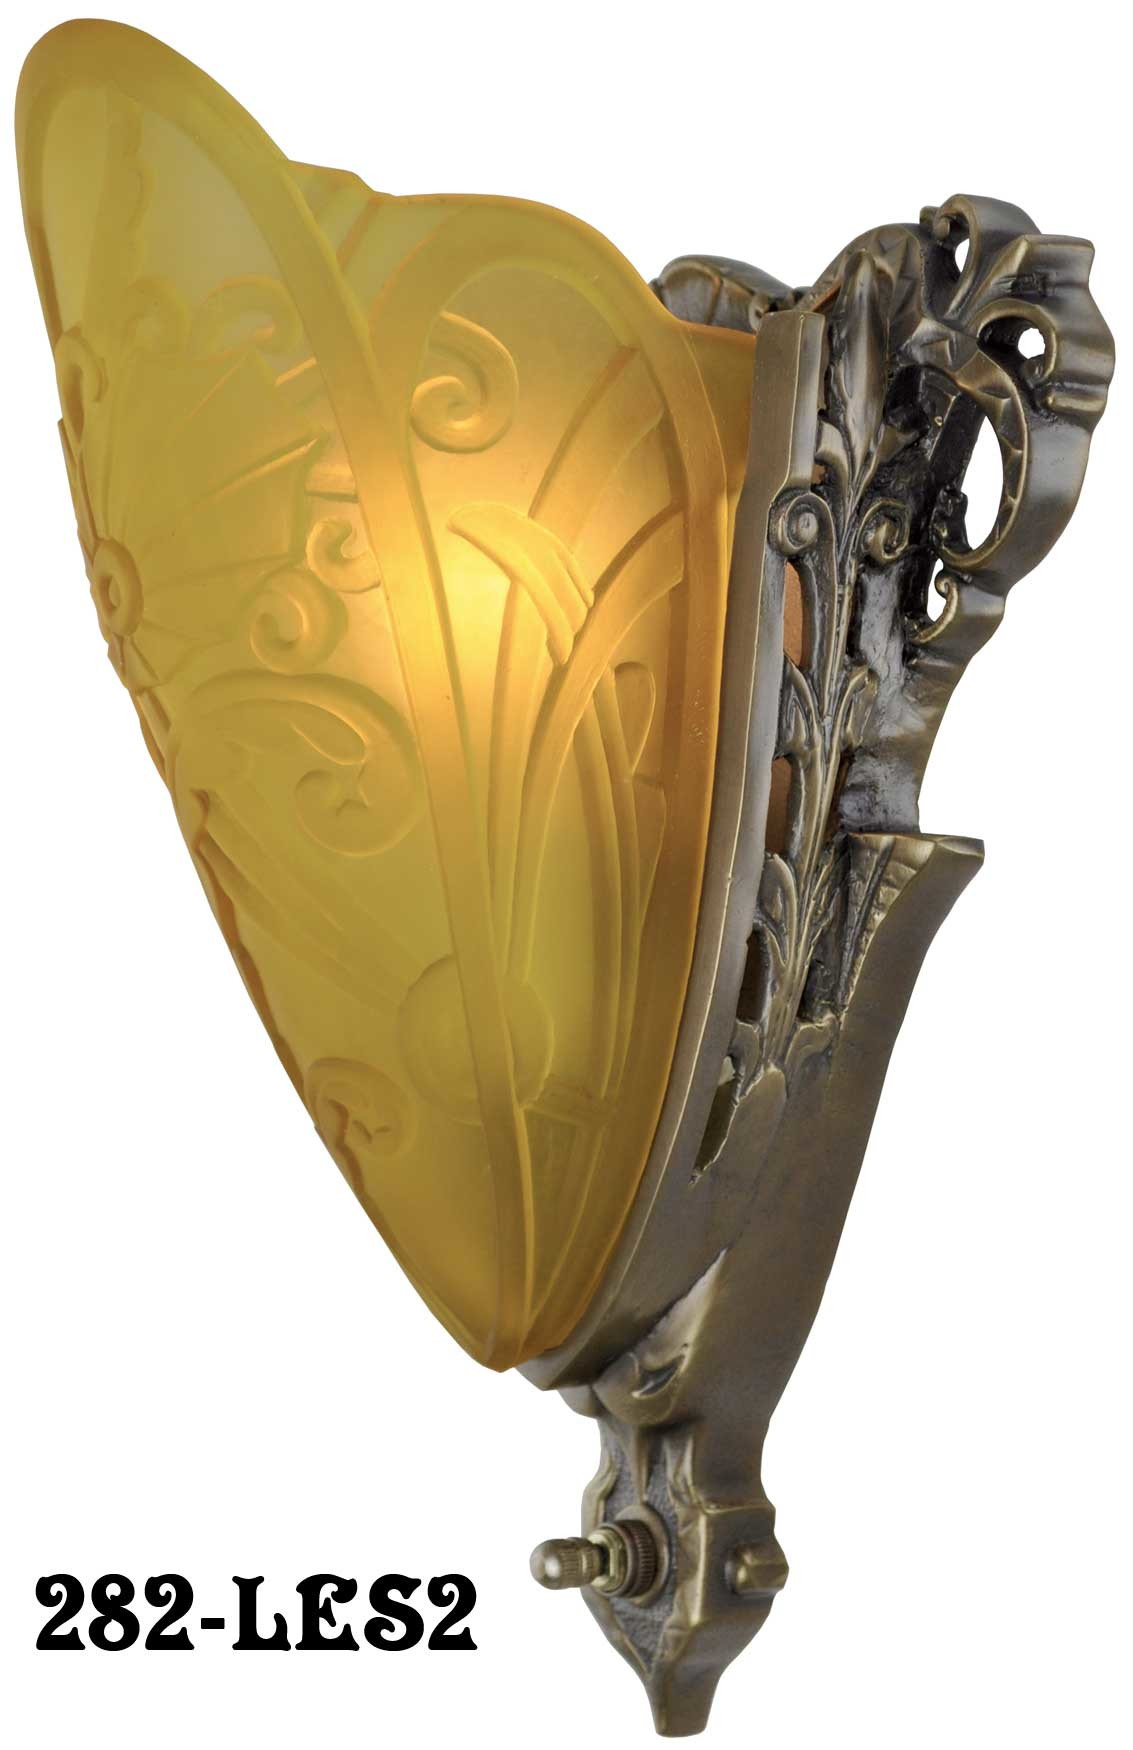 282-LES2__Art_Deco_Slip_Shade_Medieval_Sconce_With_Amber_Shade_-les2.jpg